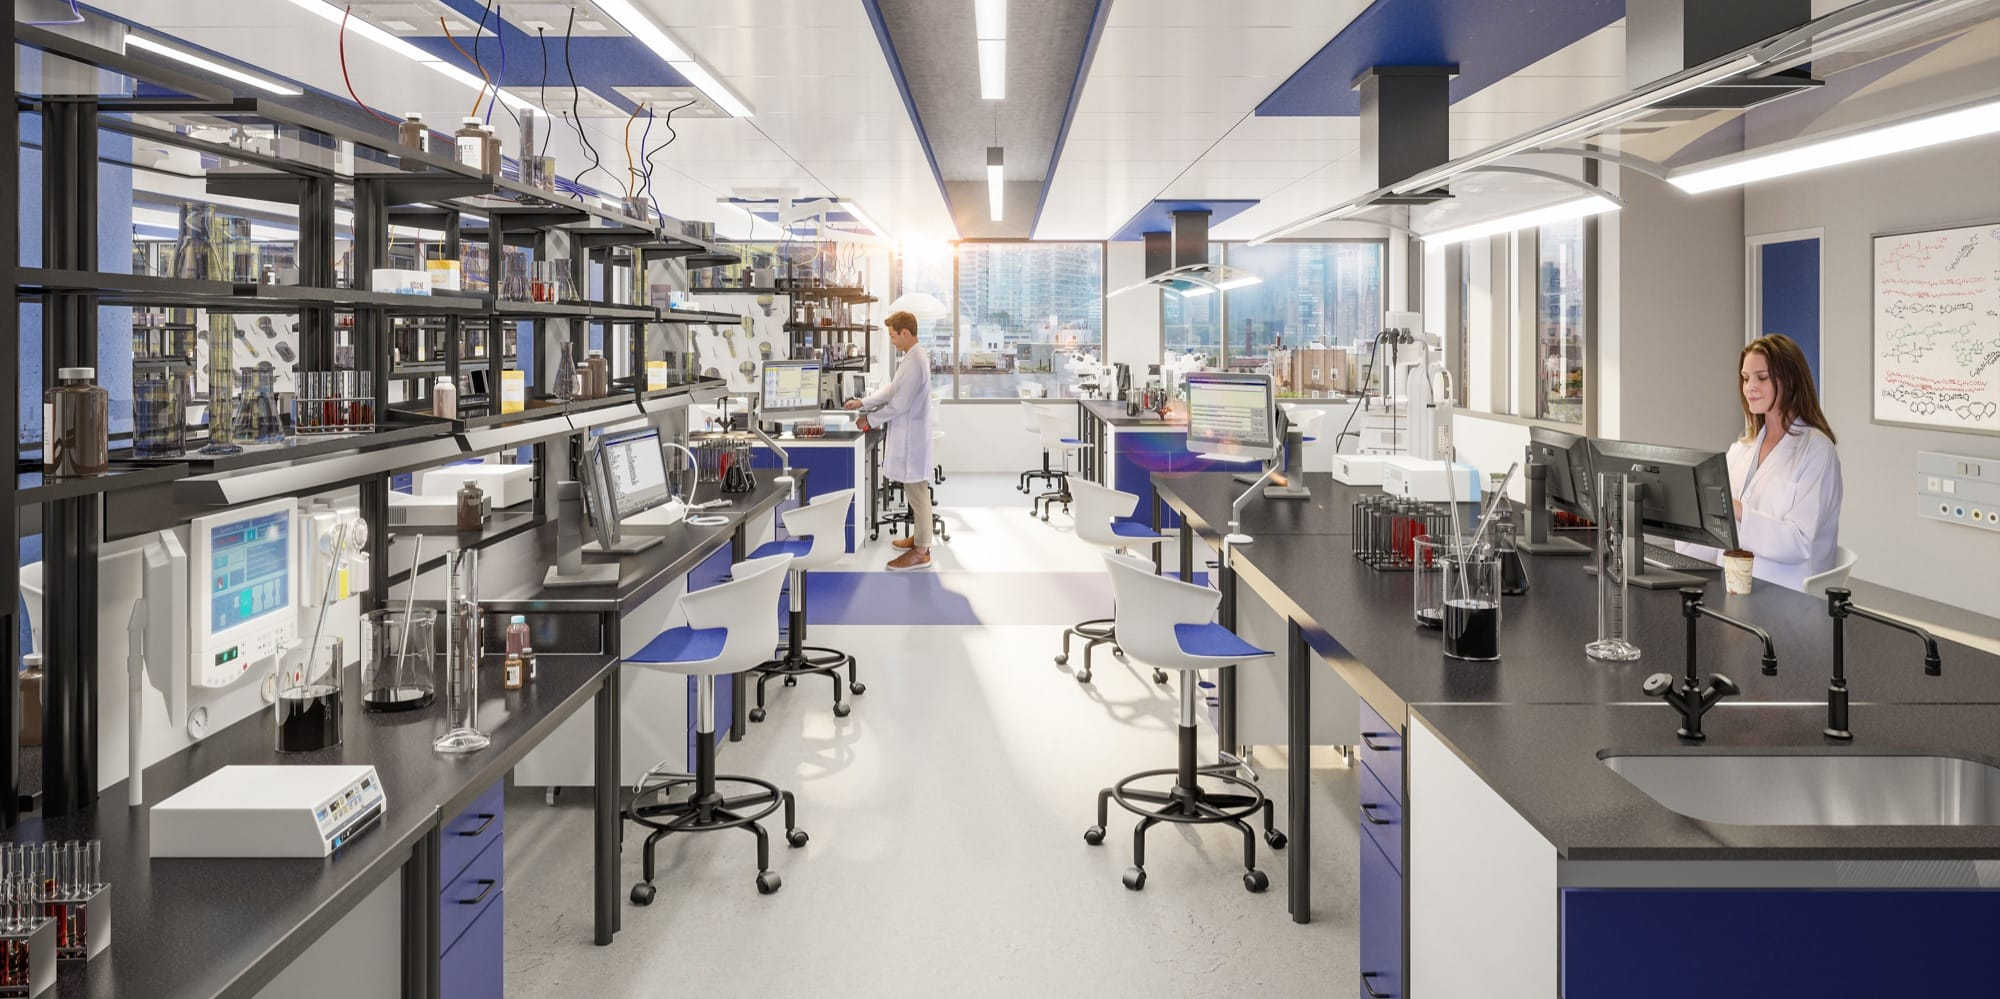 Scientists work in state-of-the-art lab space at Innolabs